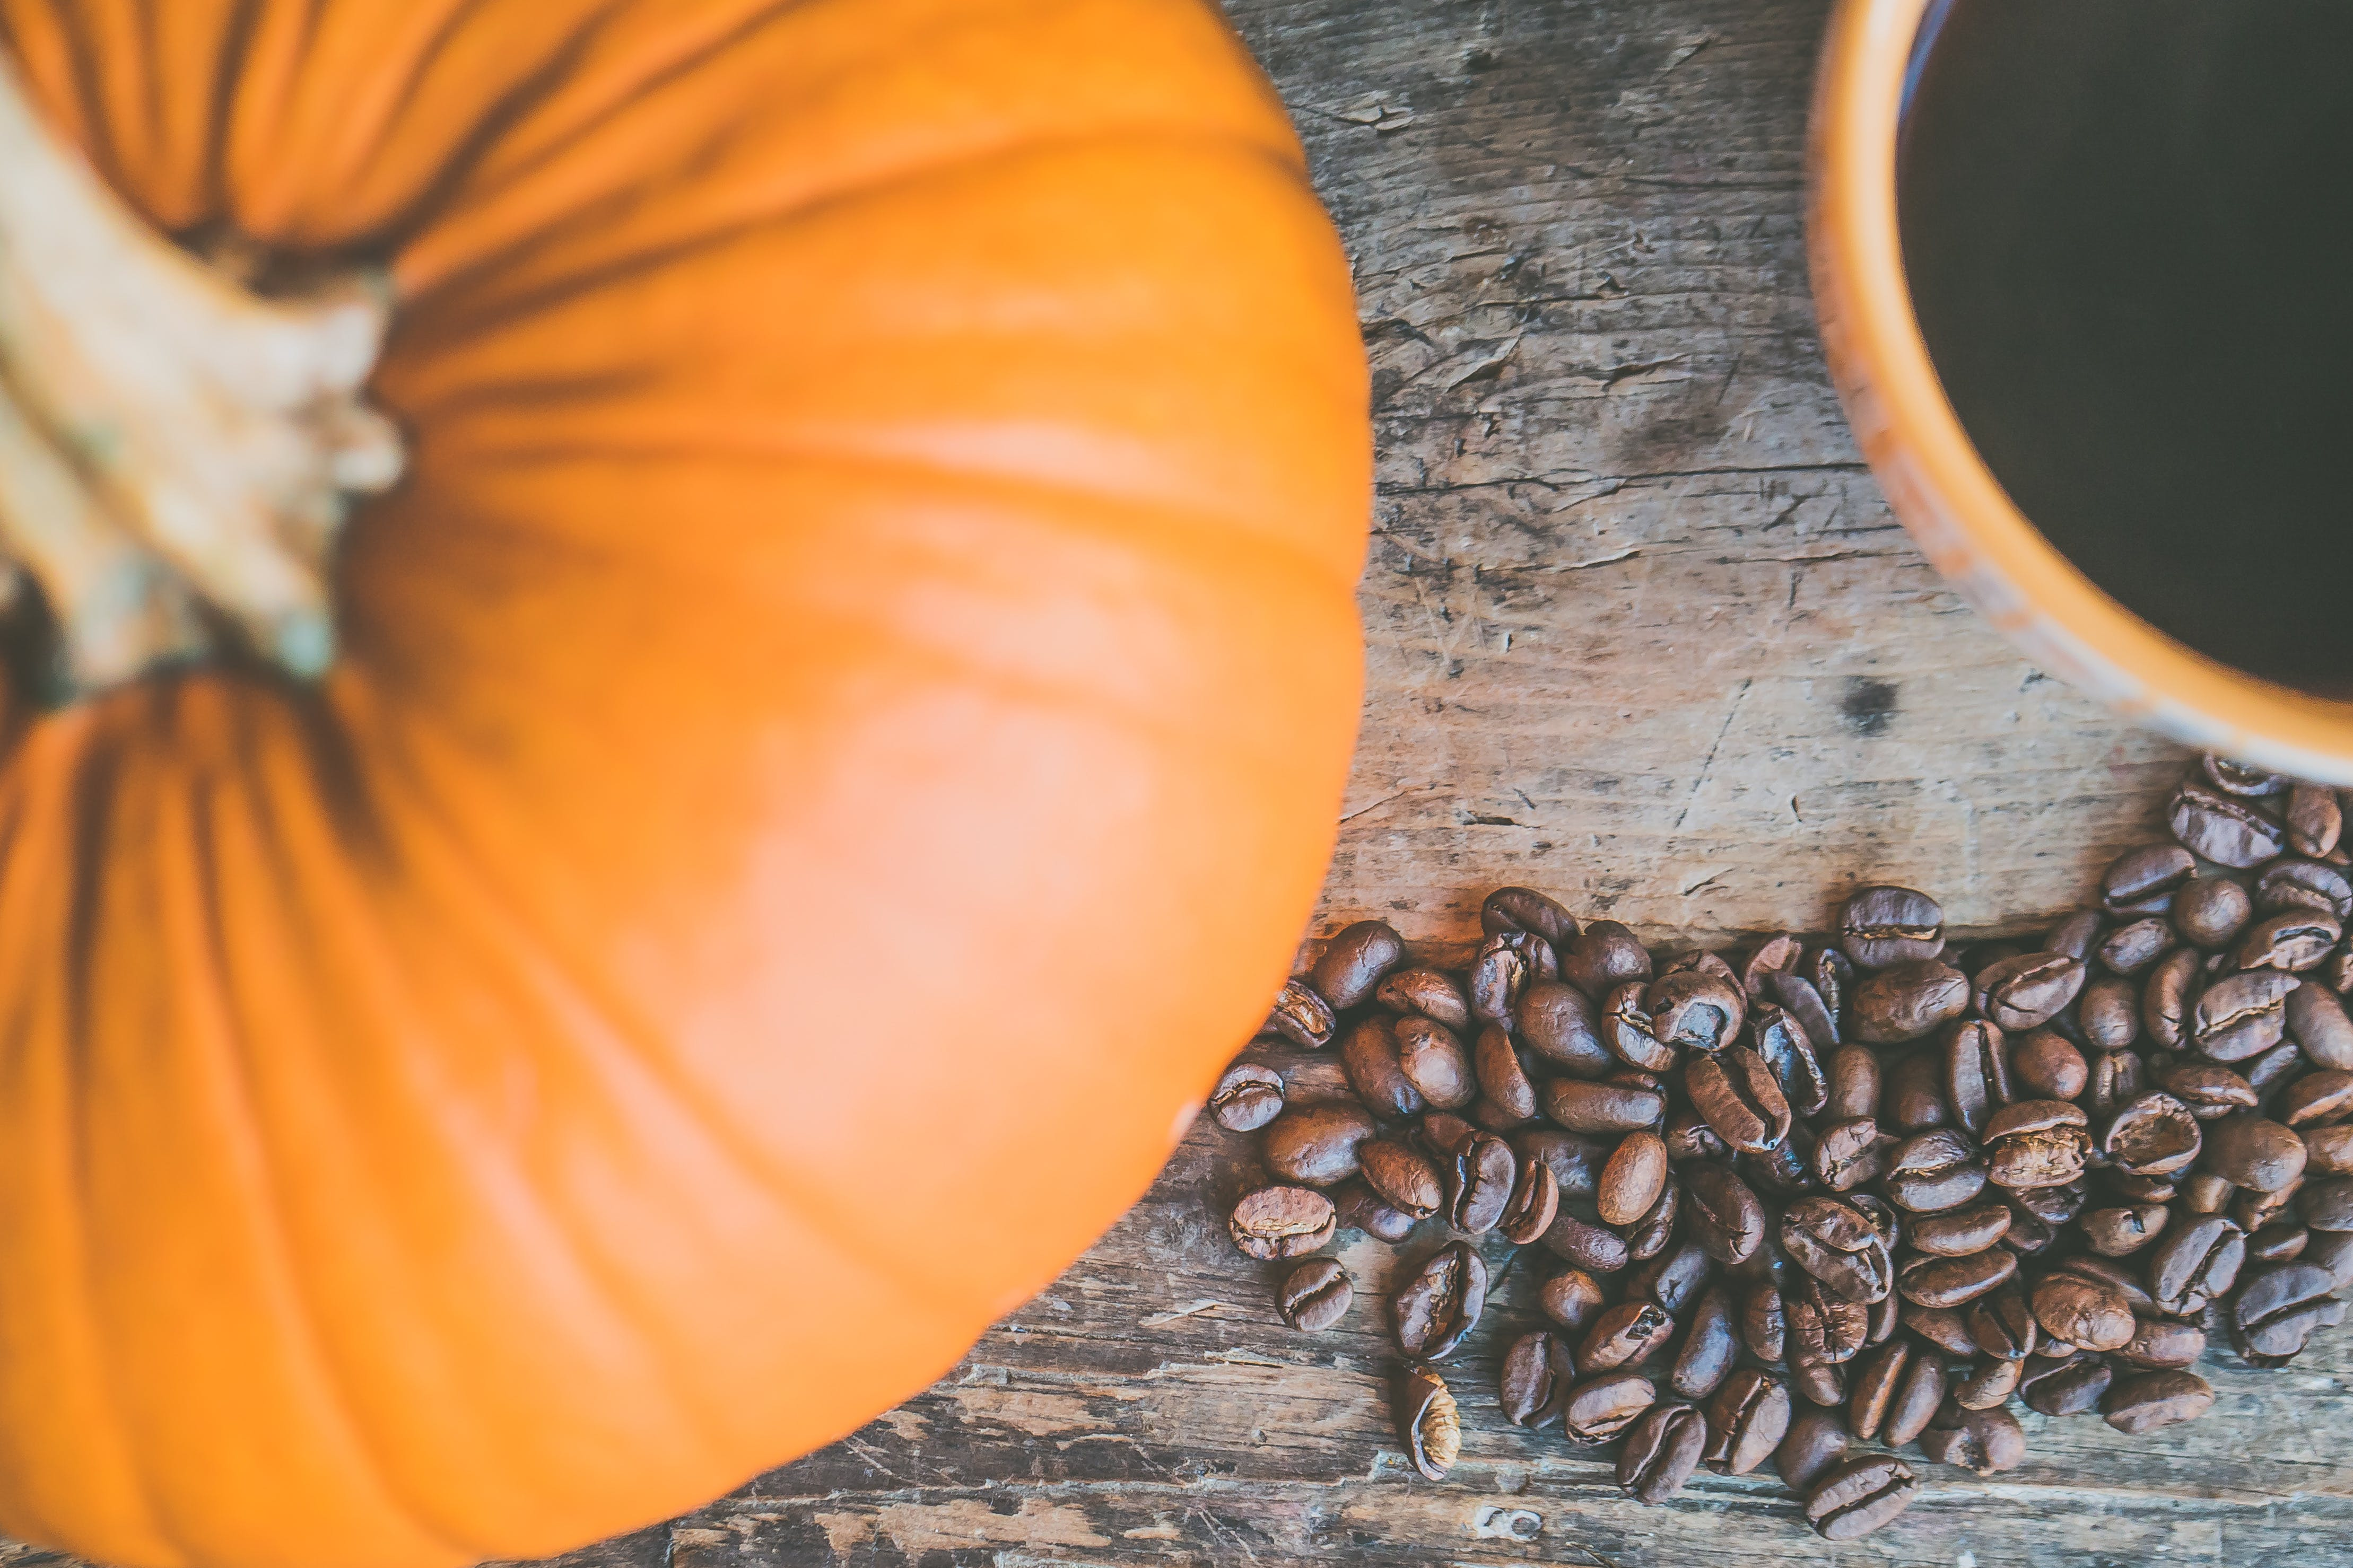 Orange Pumpkin and Coffee Beans